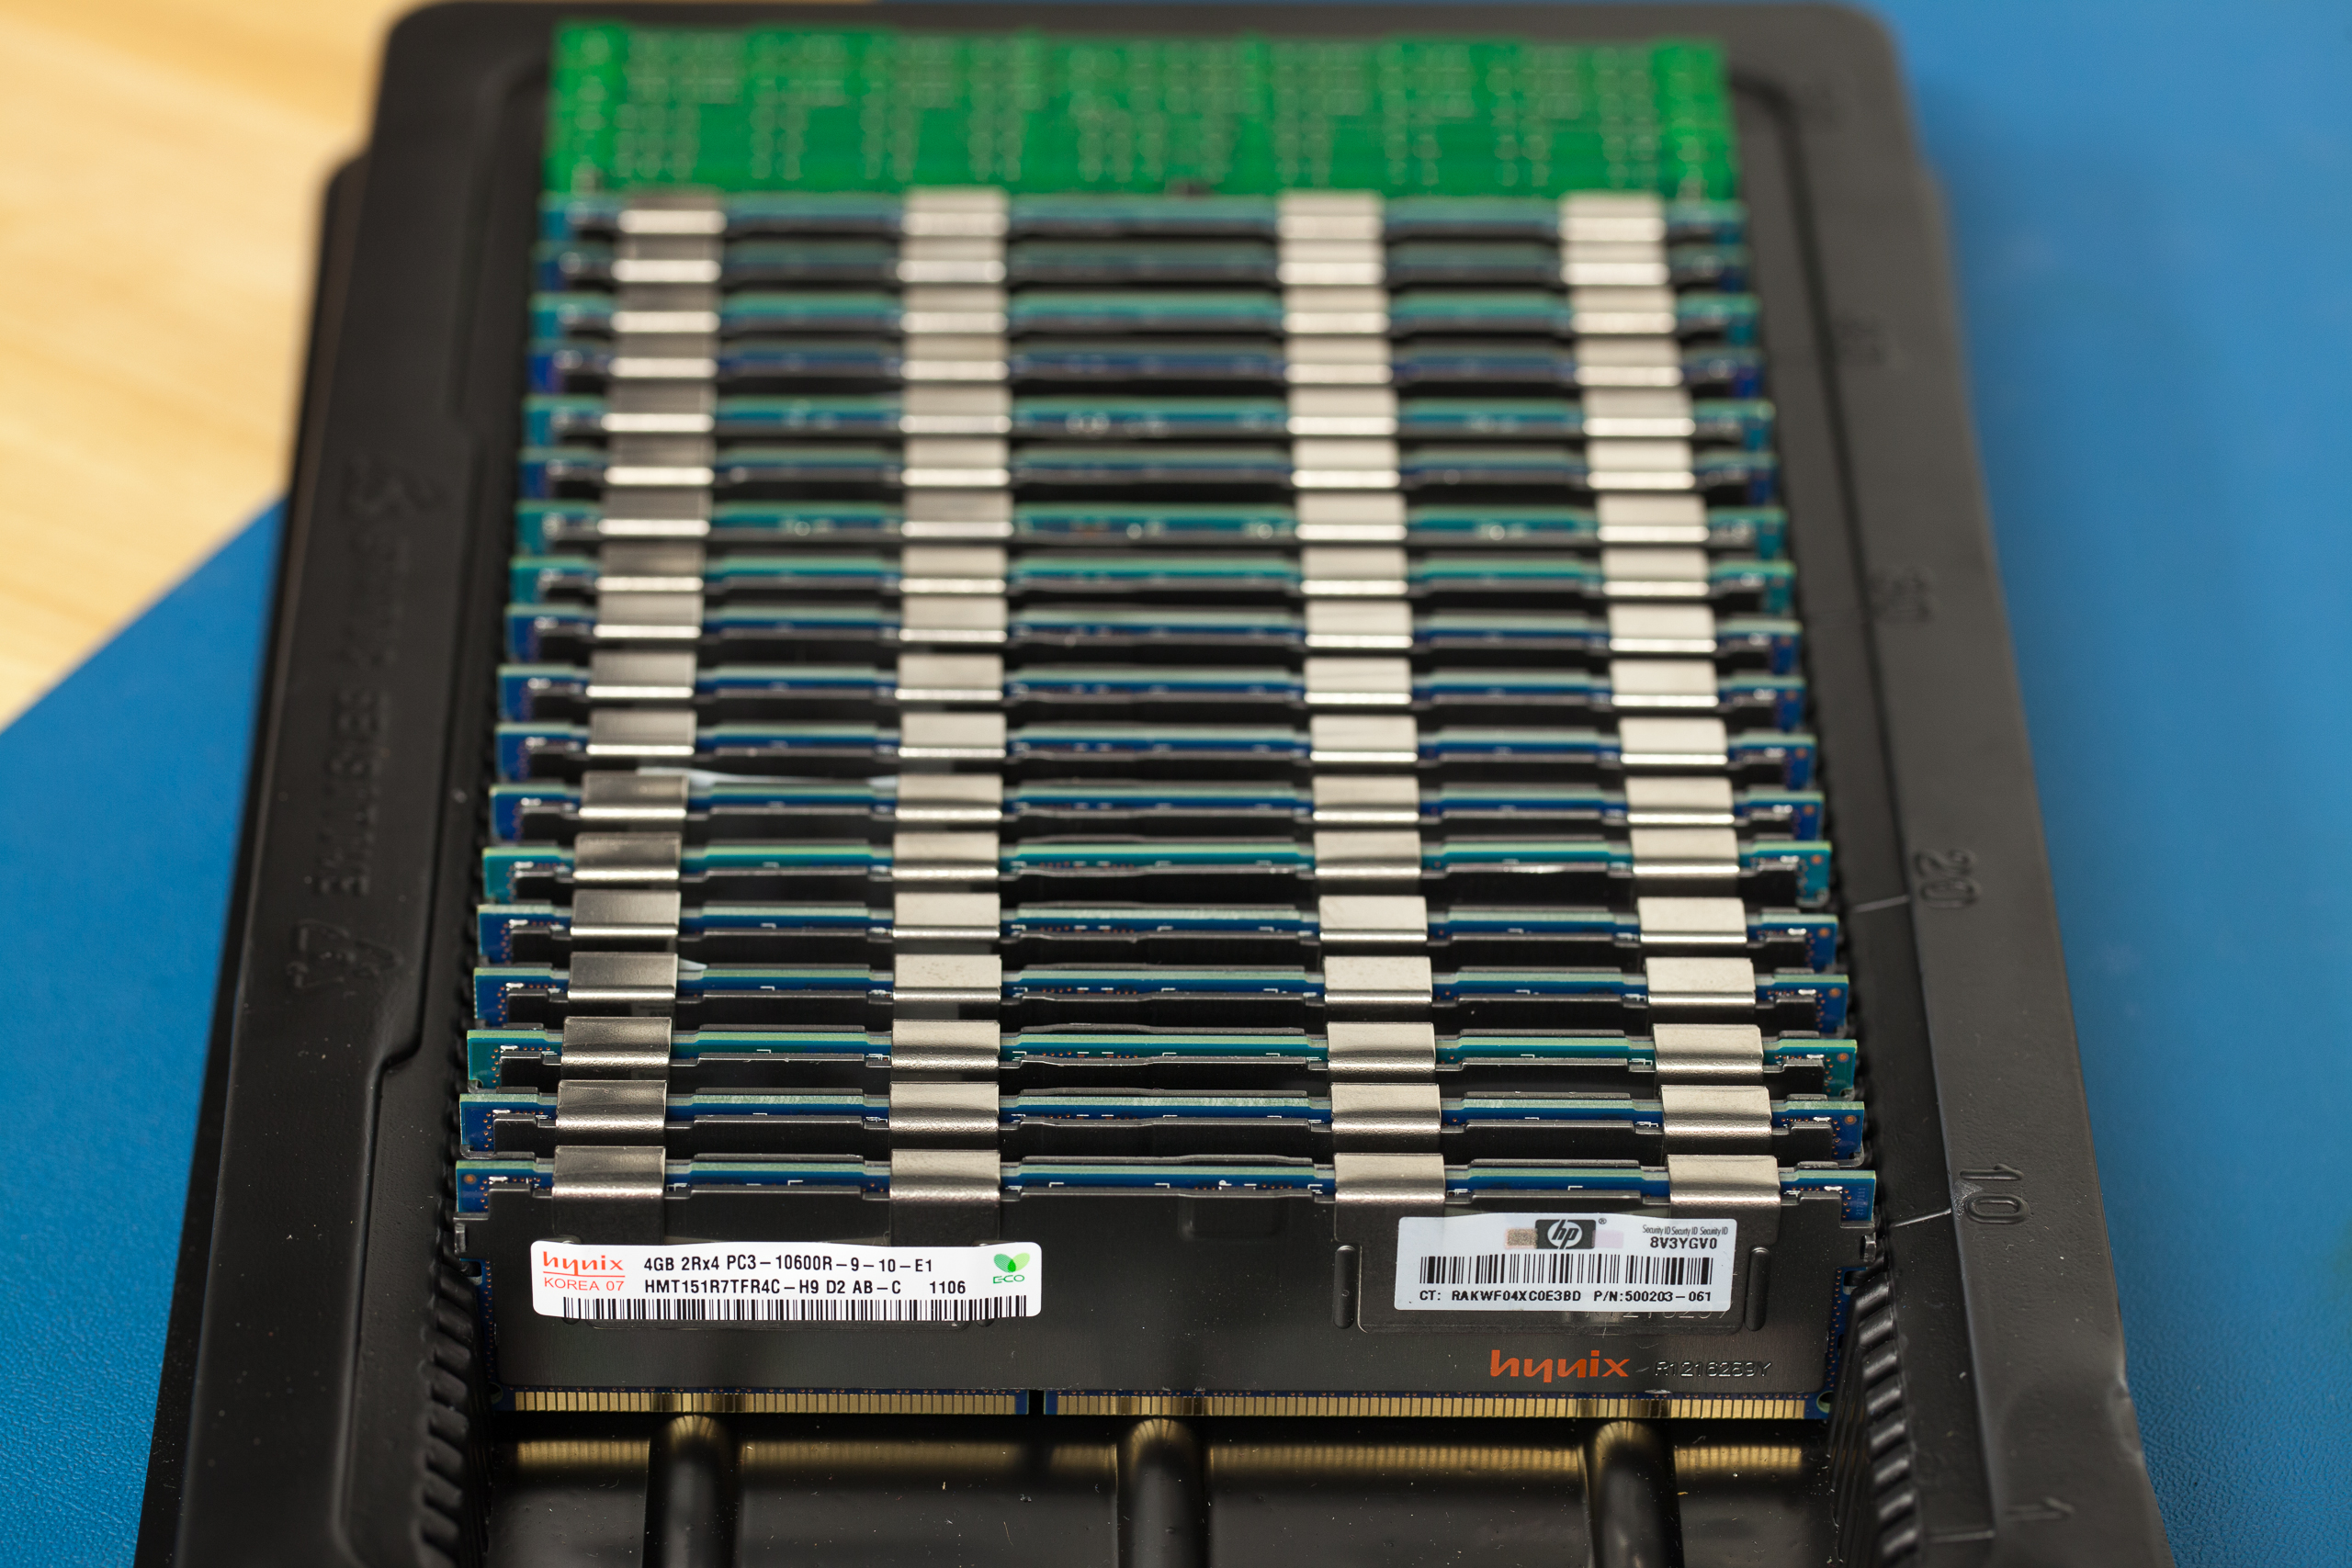 Does fully populating an R710 with RAM hurt performance